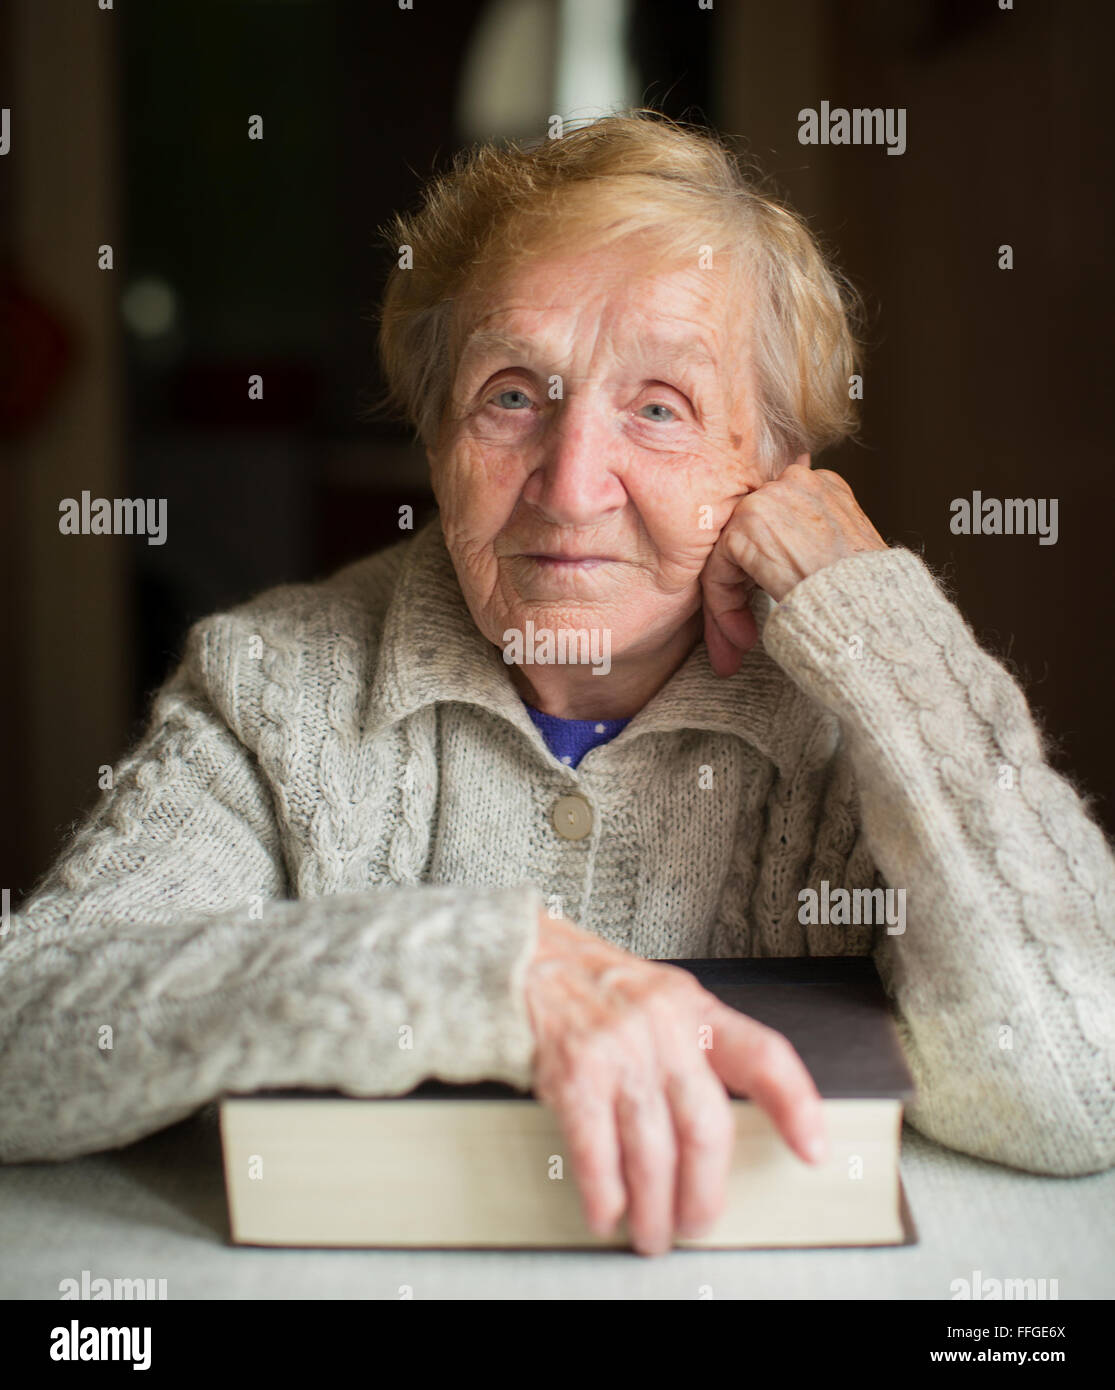 Portrait of elderly woman sitting with book. - Stock Image